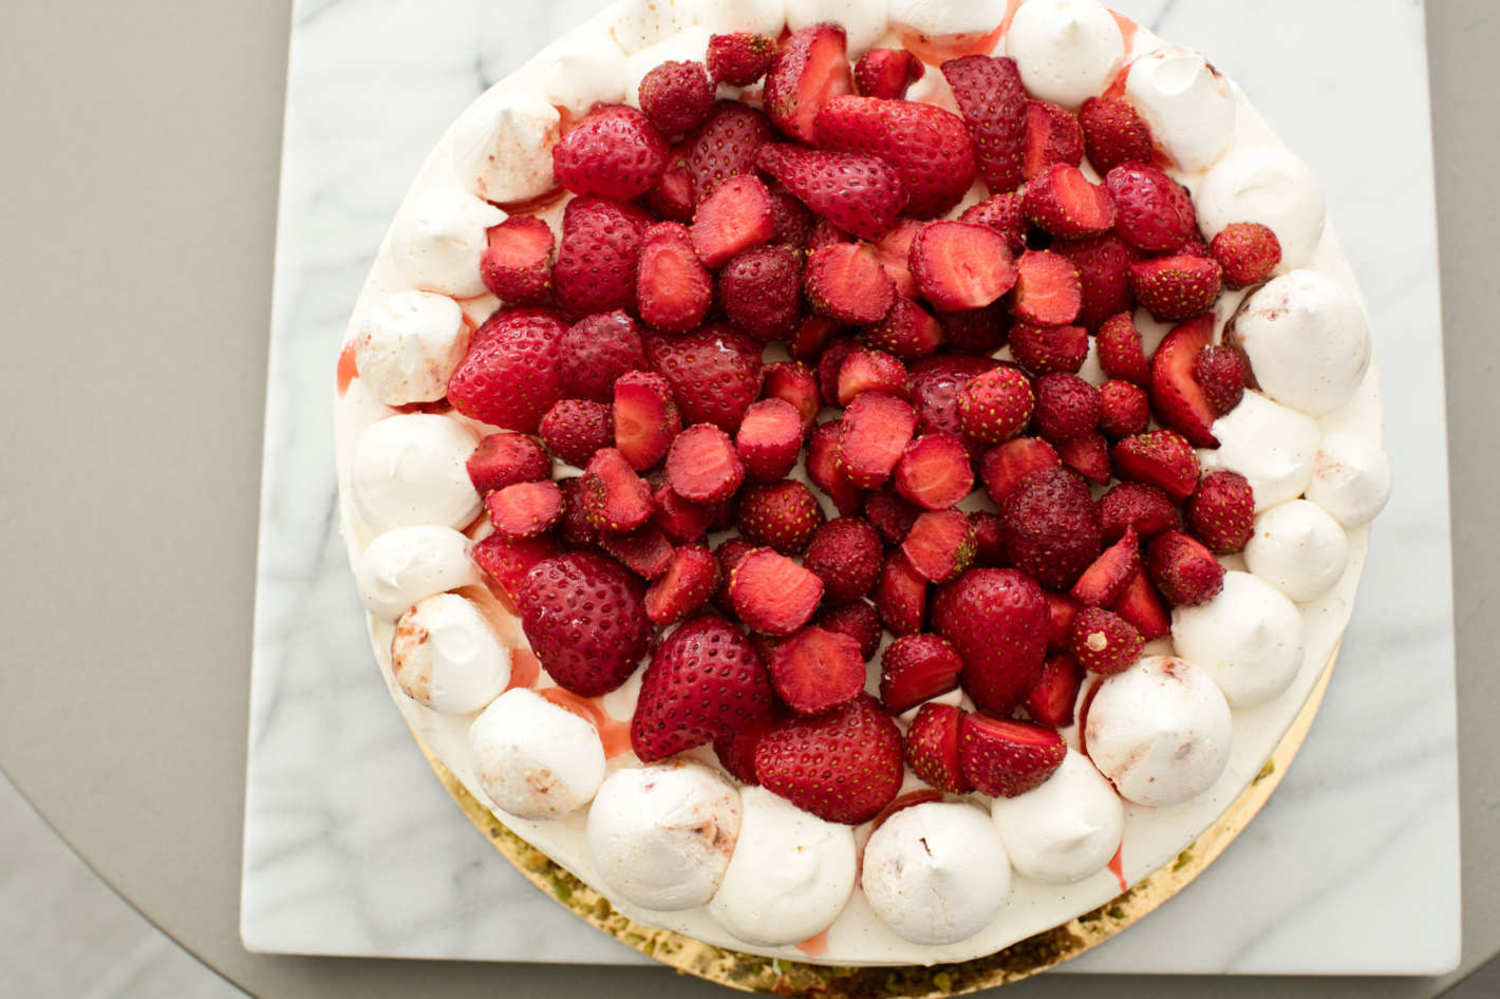 Vanilla cake with layers of Chiboust pastry cream, macerated strawberries, and crushed and whole strawberry-scented meringue.